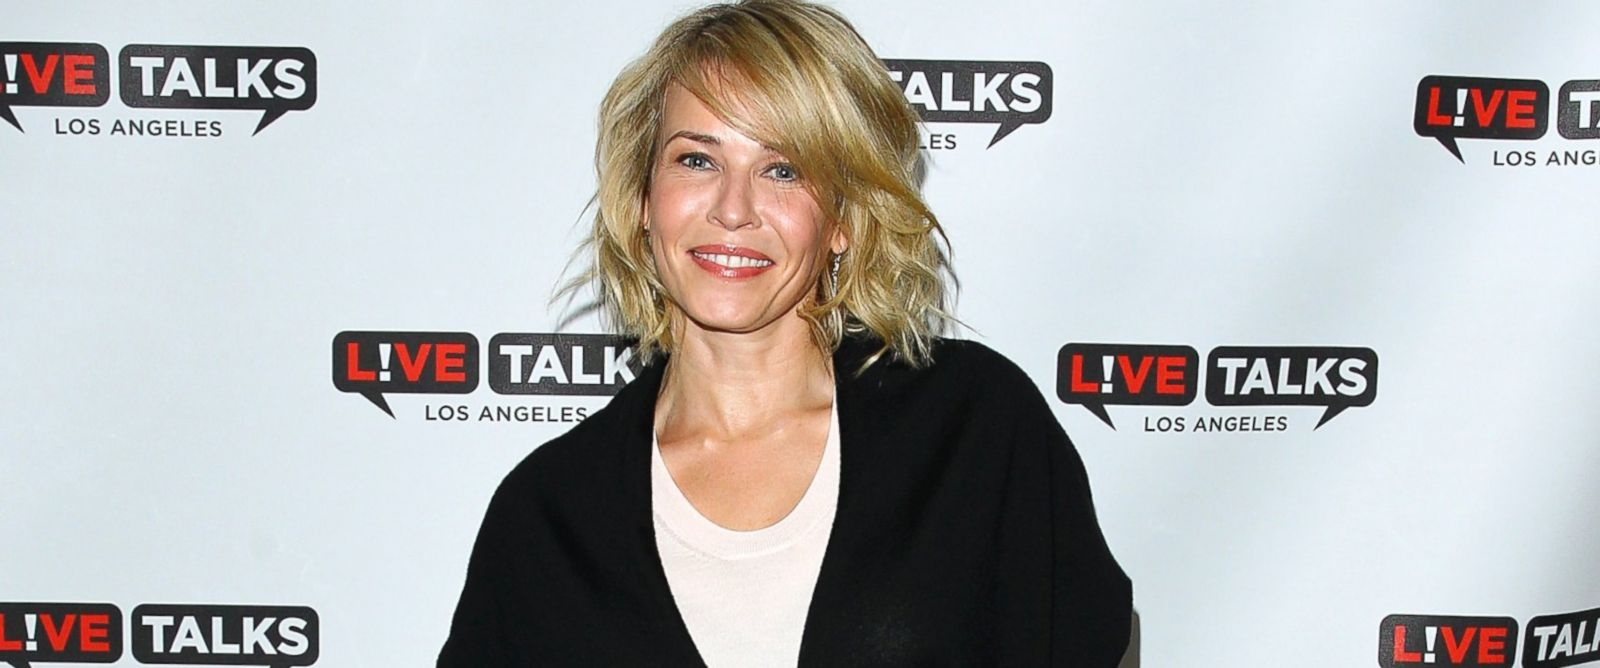 PHOTO: Chelsea Handler at Alex Theatre, March 11, 2014, in Glendale, Calif.